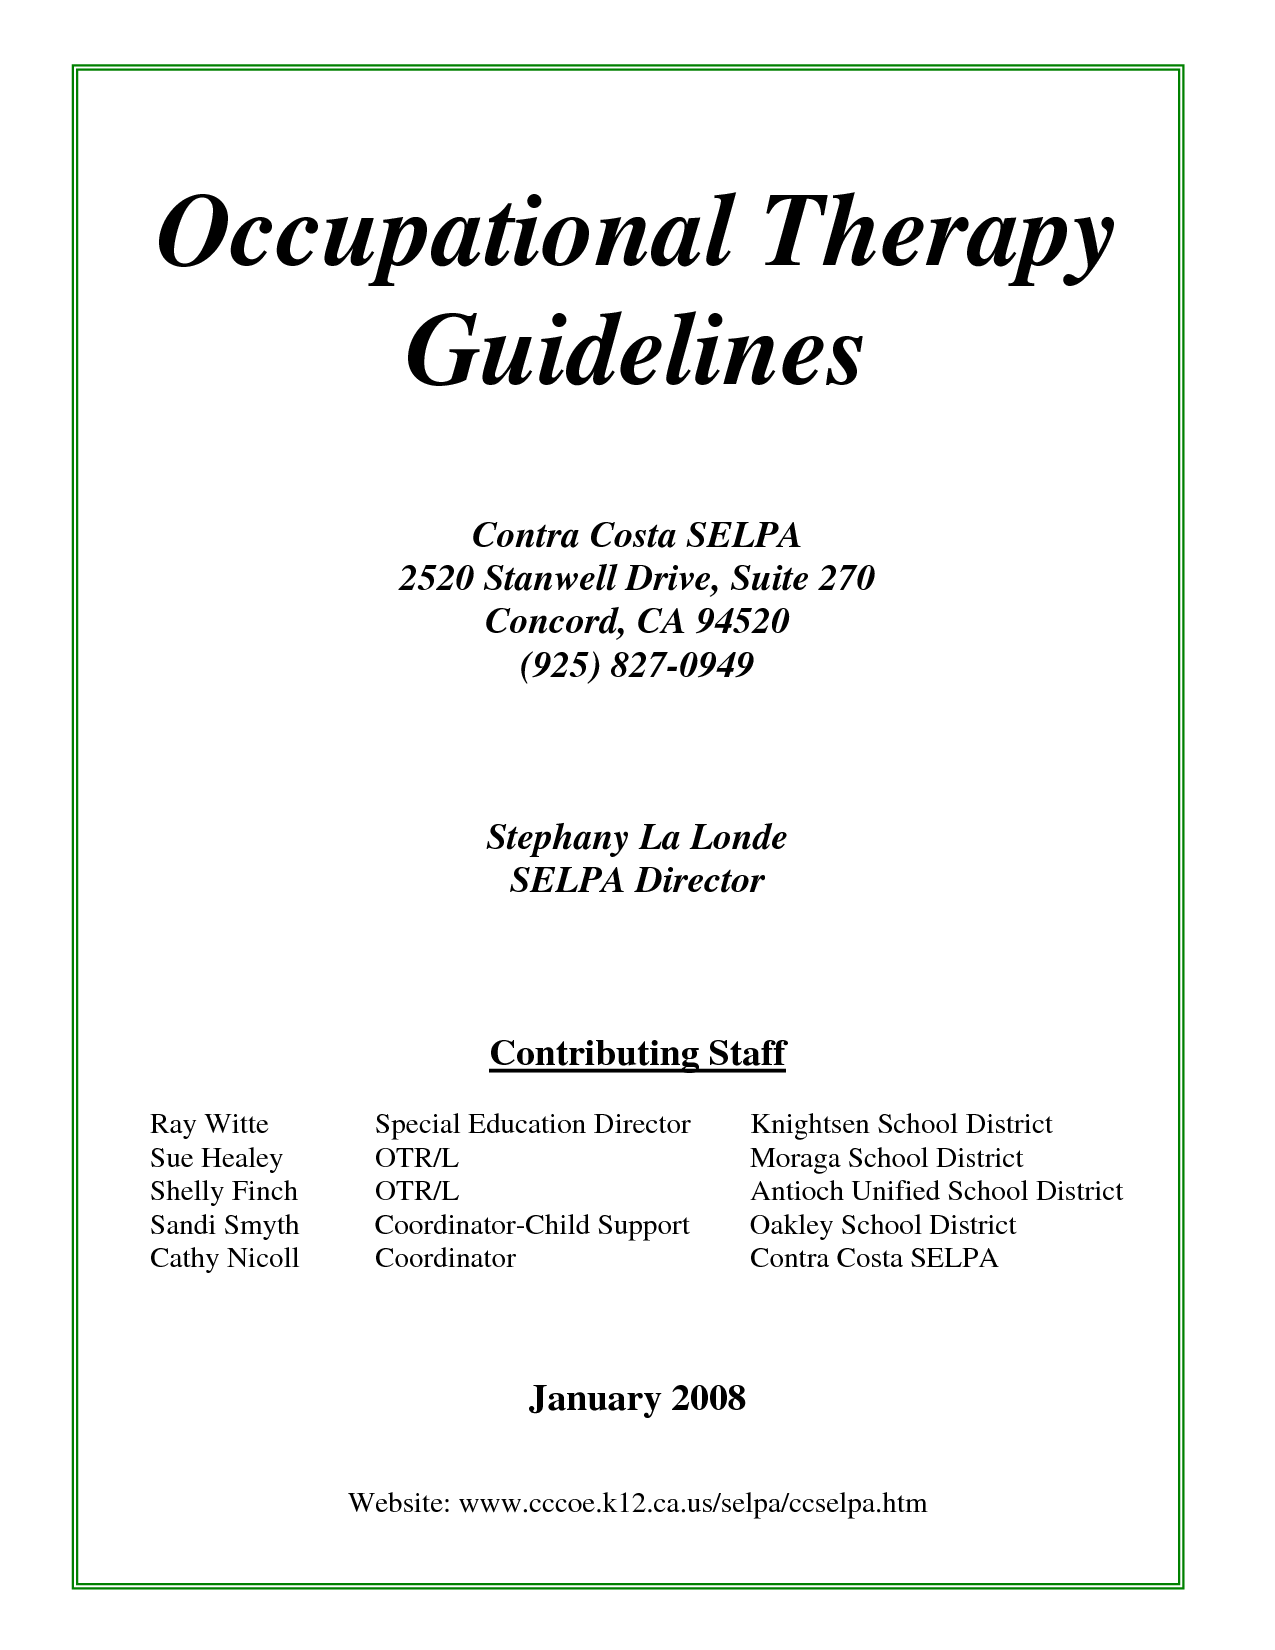 18 Best Images of Group Therapy Mental Health Worksheets ...